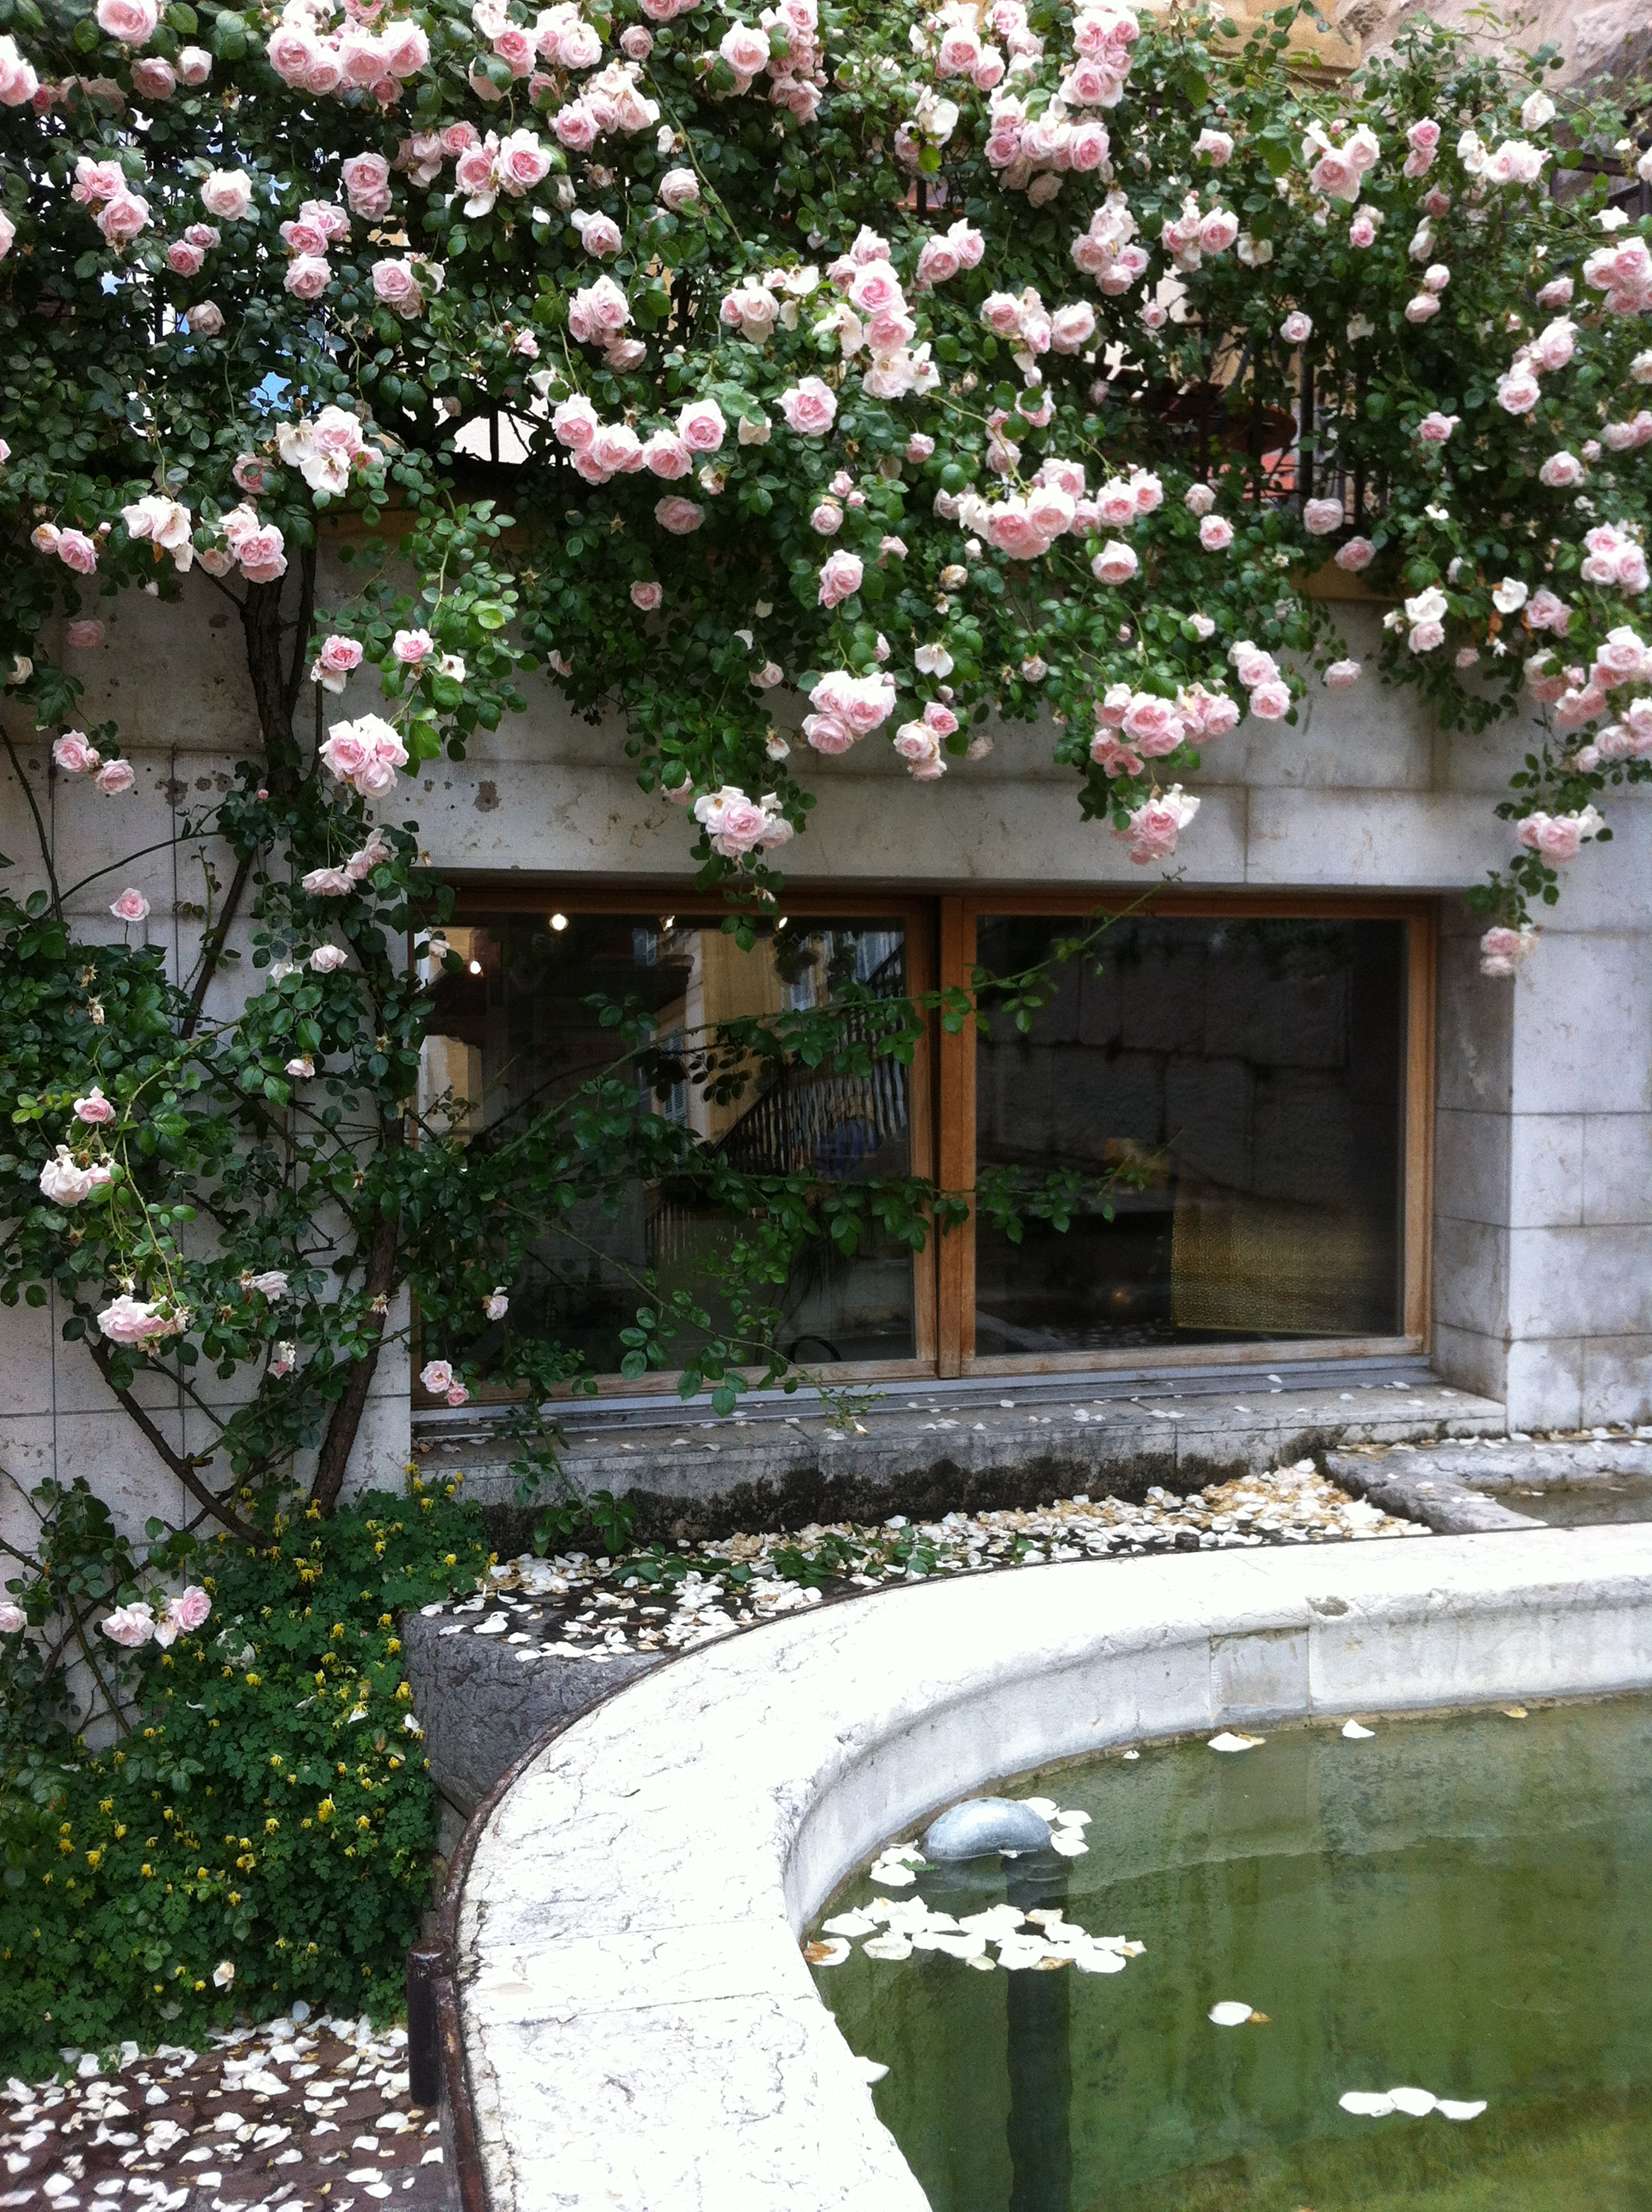 Blooming rosebush and rose petals on the fountain.